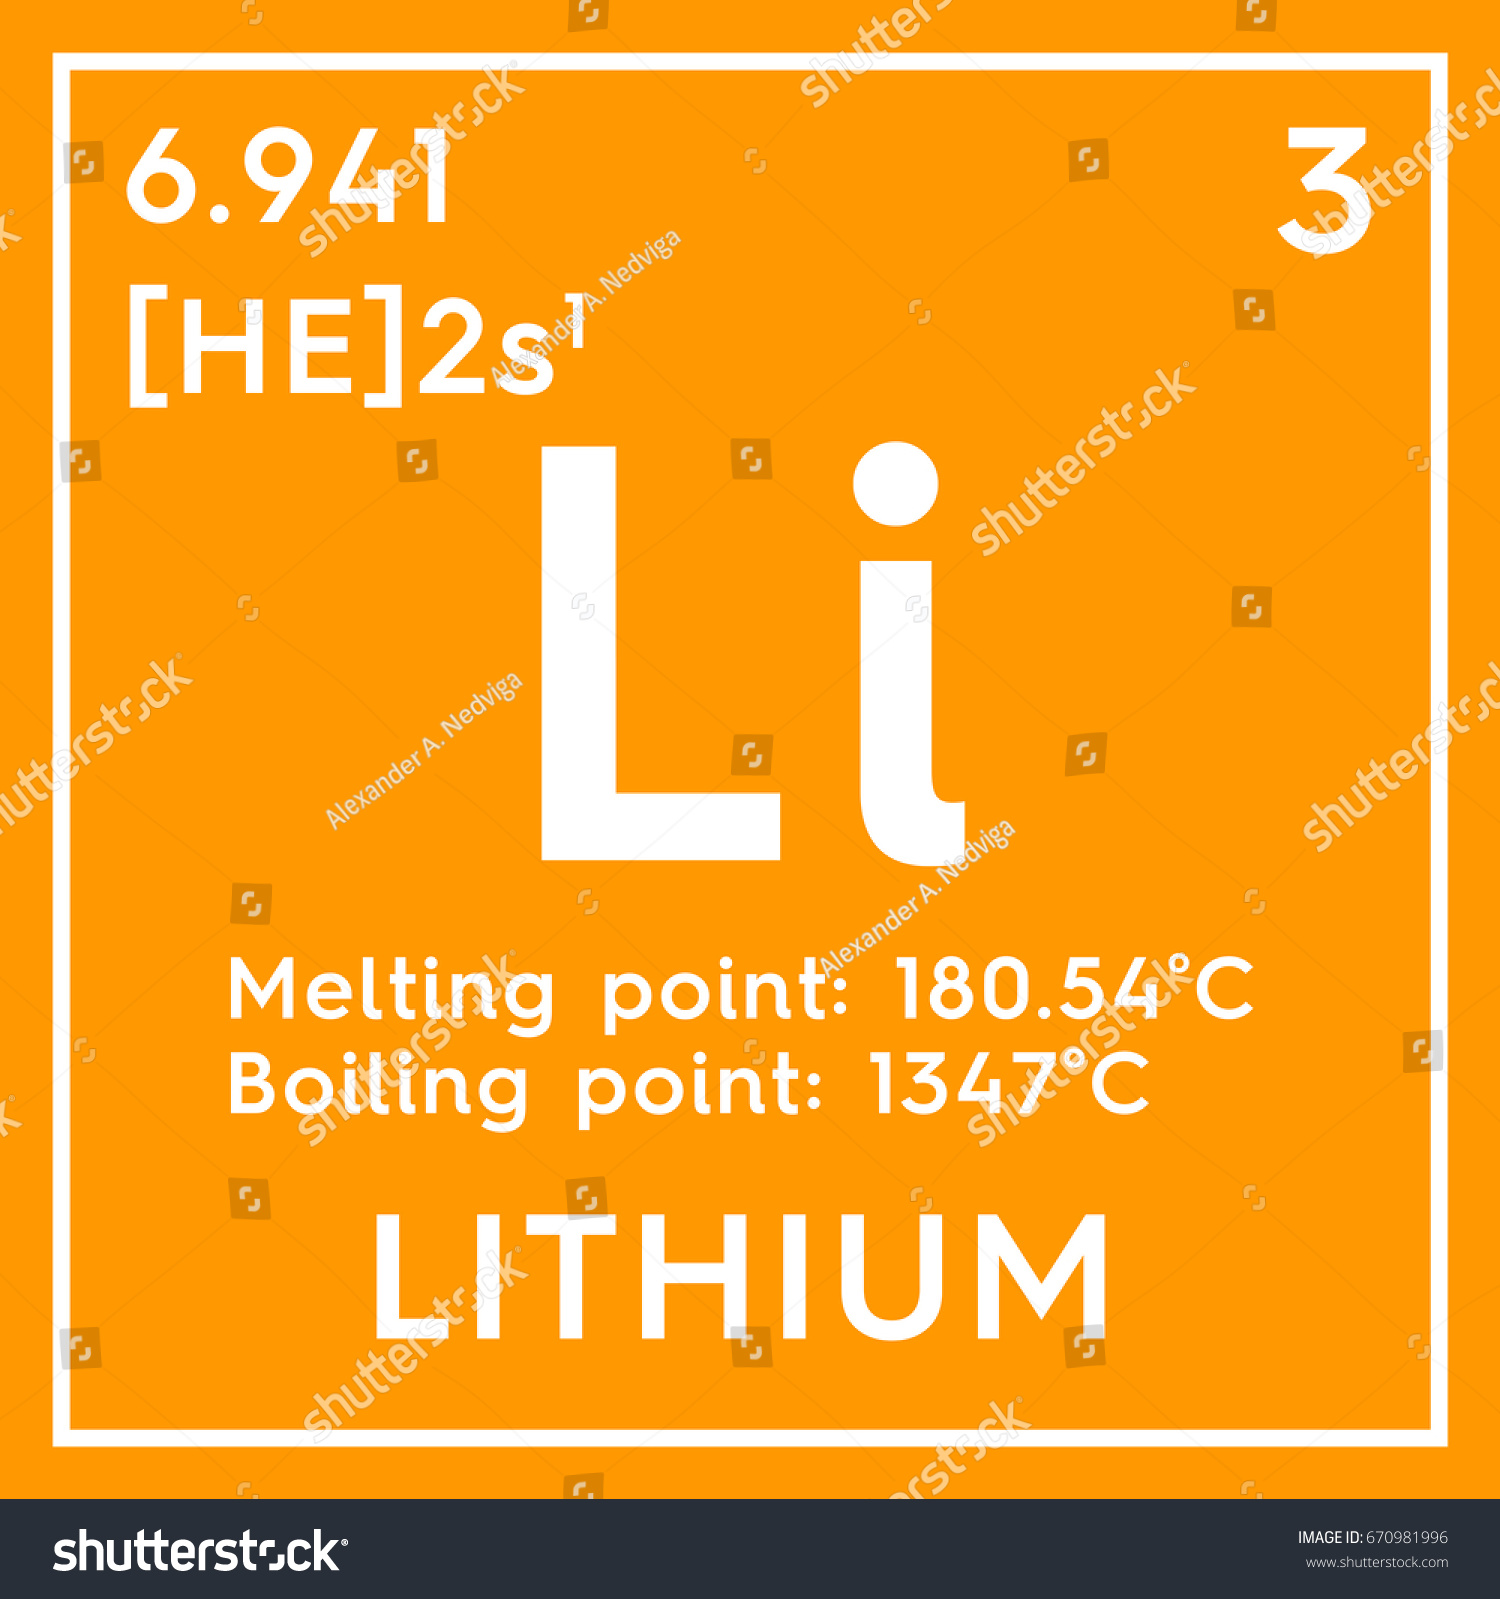 Periodic table caesium gallery periodic table images lithium alkali metals chemical element mendeleevs stock chemical element of mendeleevs periodic table lithium in square gamestrikefo Image collections